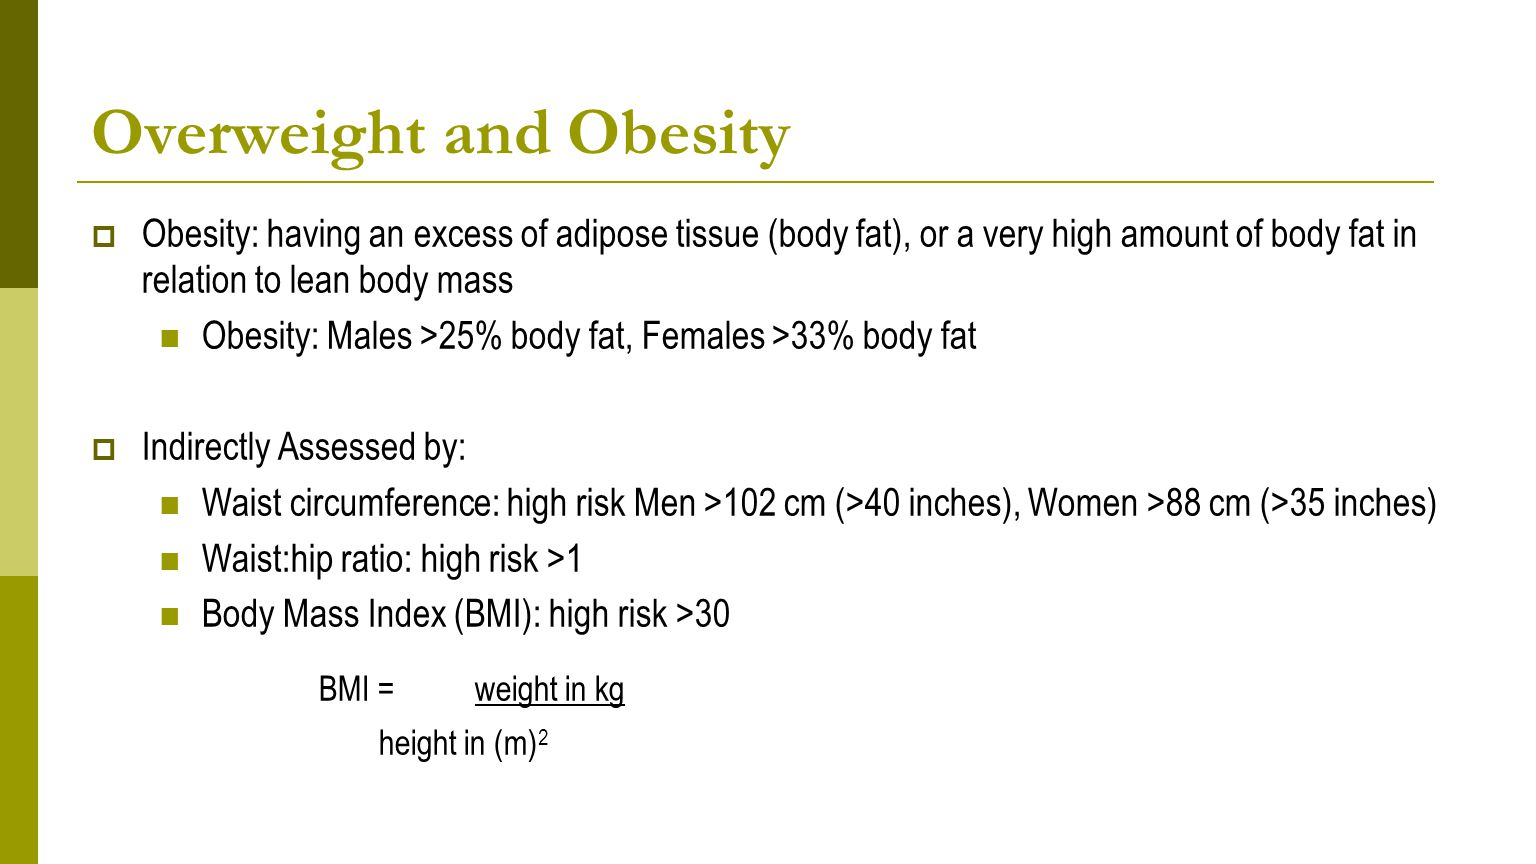 Overweight and Obesity  Obesity: having an excess of adipose tissue (body fat), or a very high amount of body fat in relation to lean body mass Obesity: Males >25% body fat, Females >33% body fat  Indirectly Assessed by: Waist circumference: high risk Men >102 cm (>40 inches), Women >88 cm (>35 inches) Waist:hip ratio: high risk >1 Body Mass Index (BMI): high risk >30 BMI = weight in kg height in (m) 2